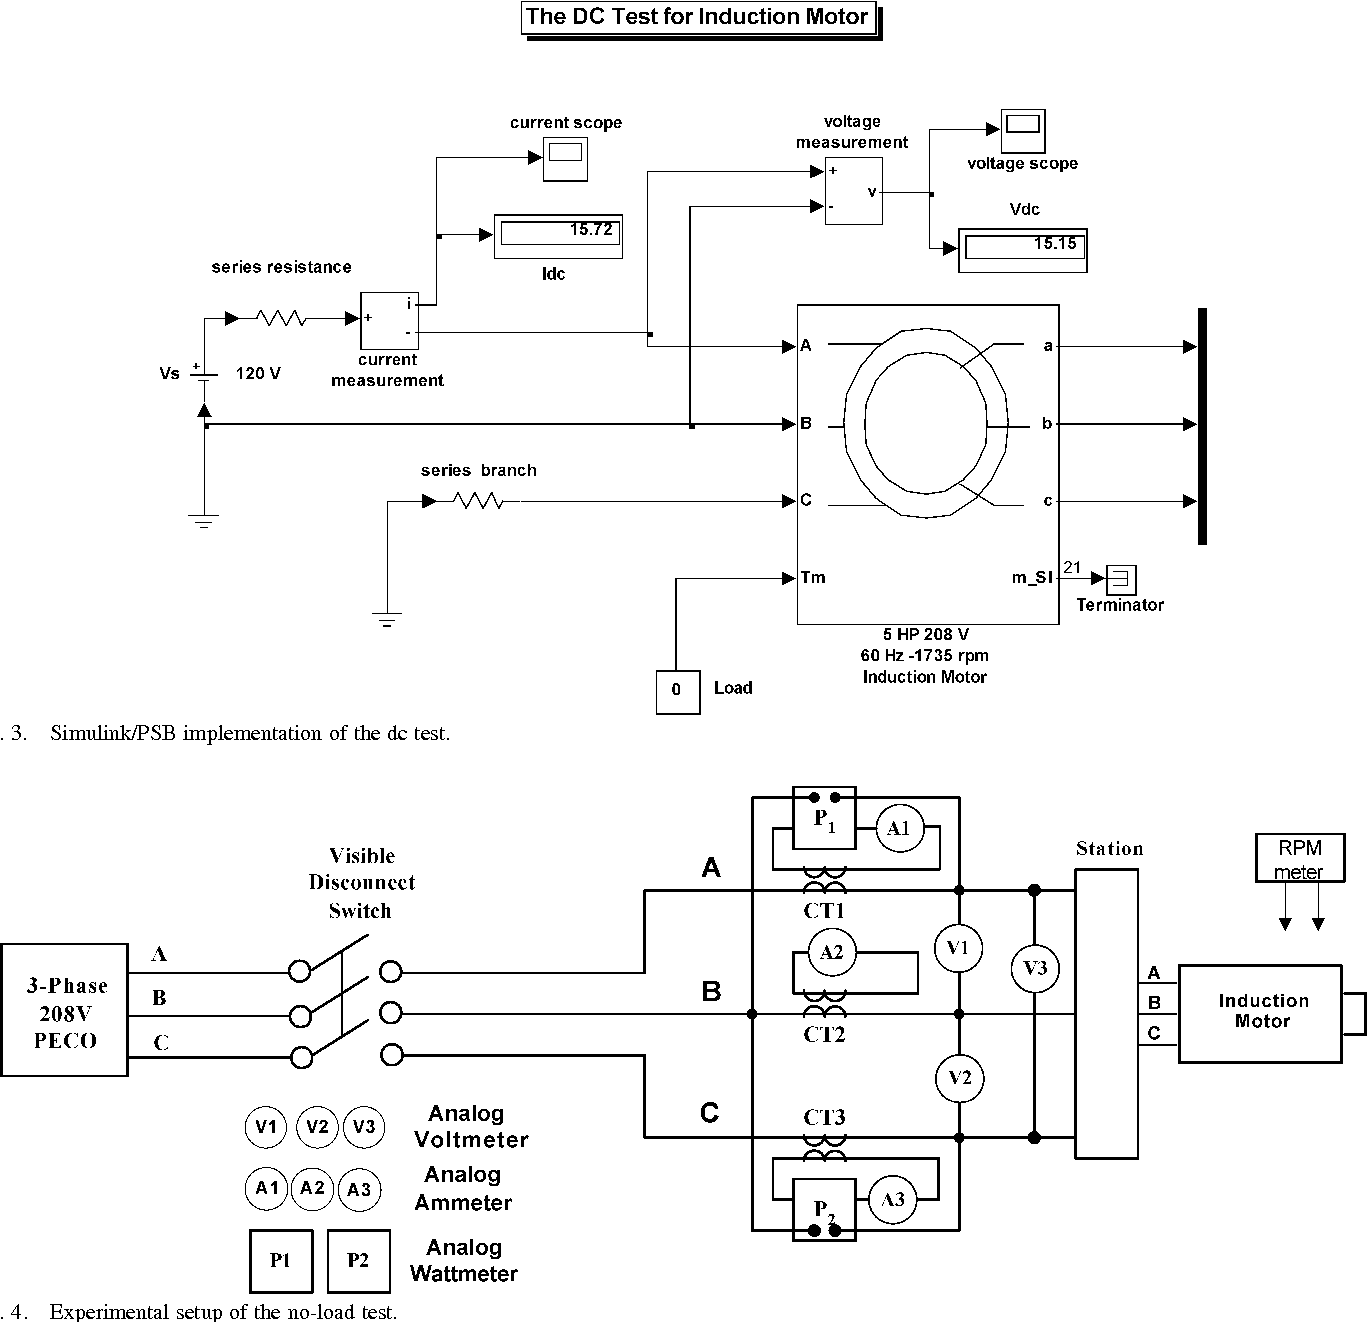 Induction motor tests using MATLAB/Simulink and their integration